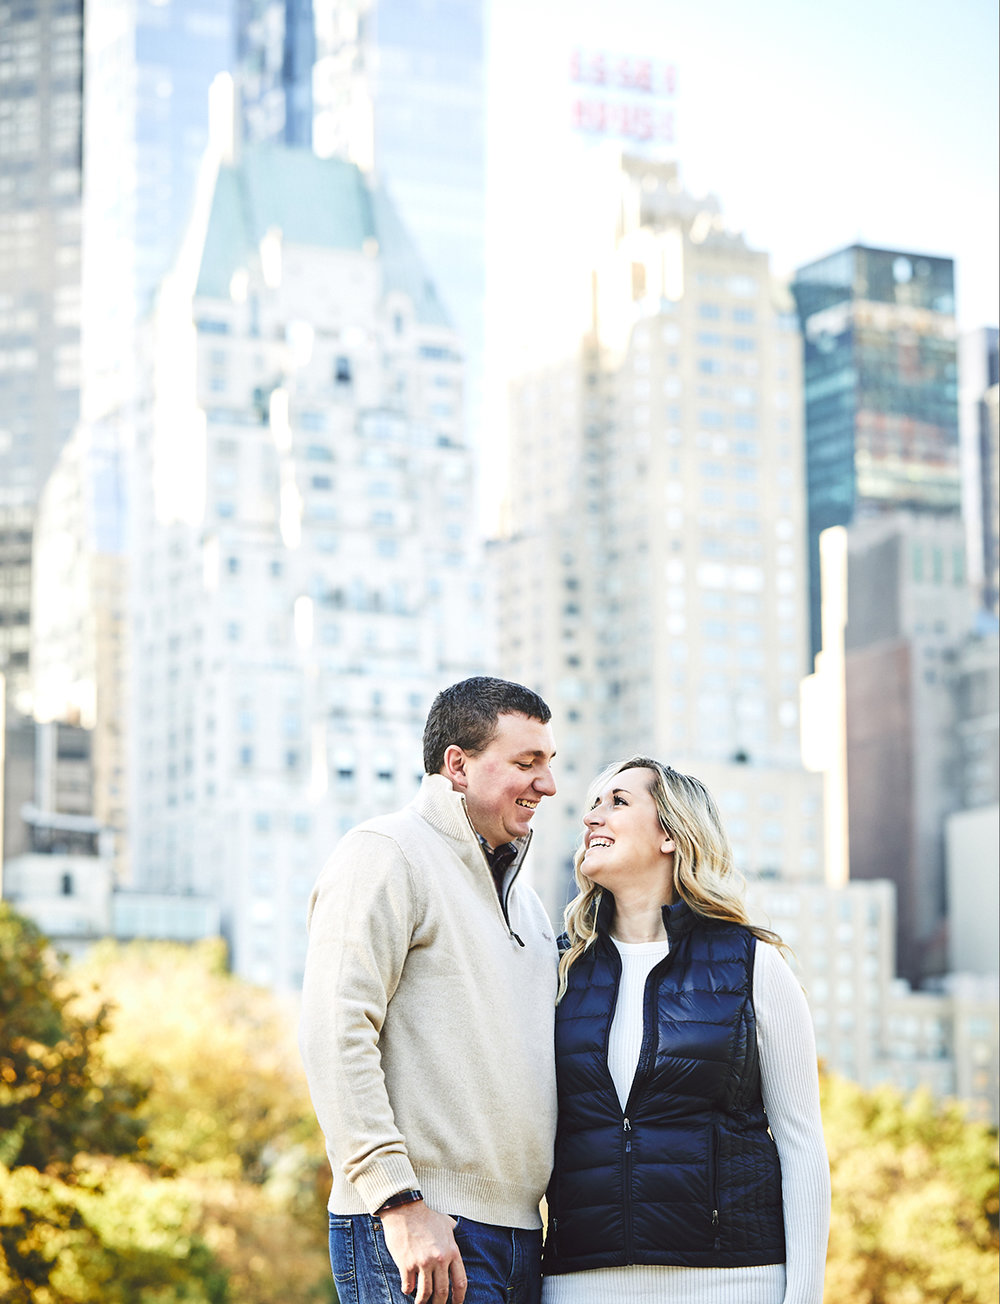 171028_EngagementPhotography_CentralParkEngagement_By_BriJohnsonWeddings_0025.jpg